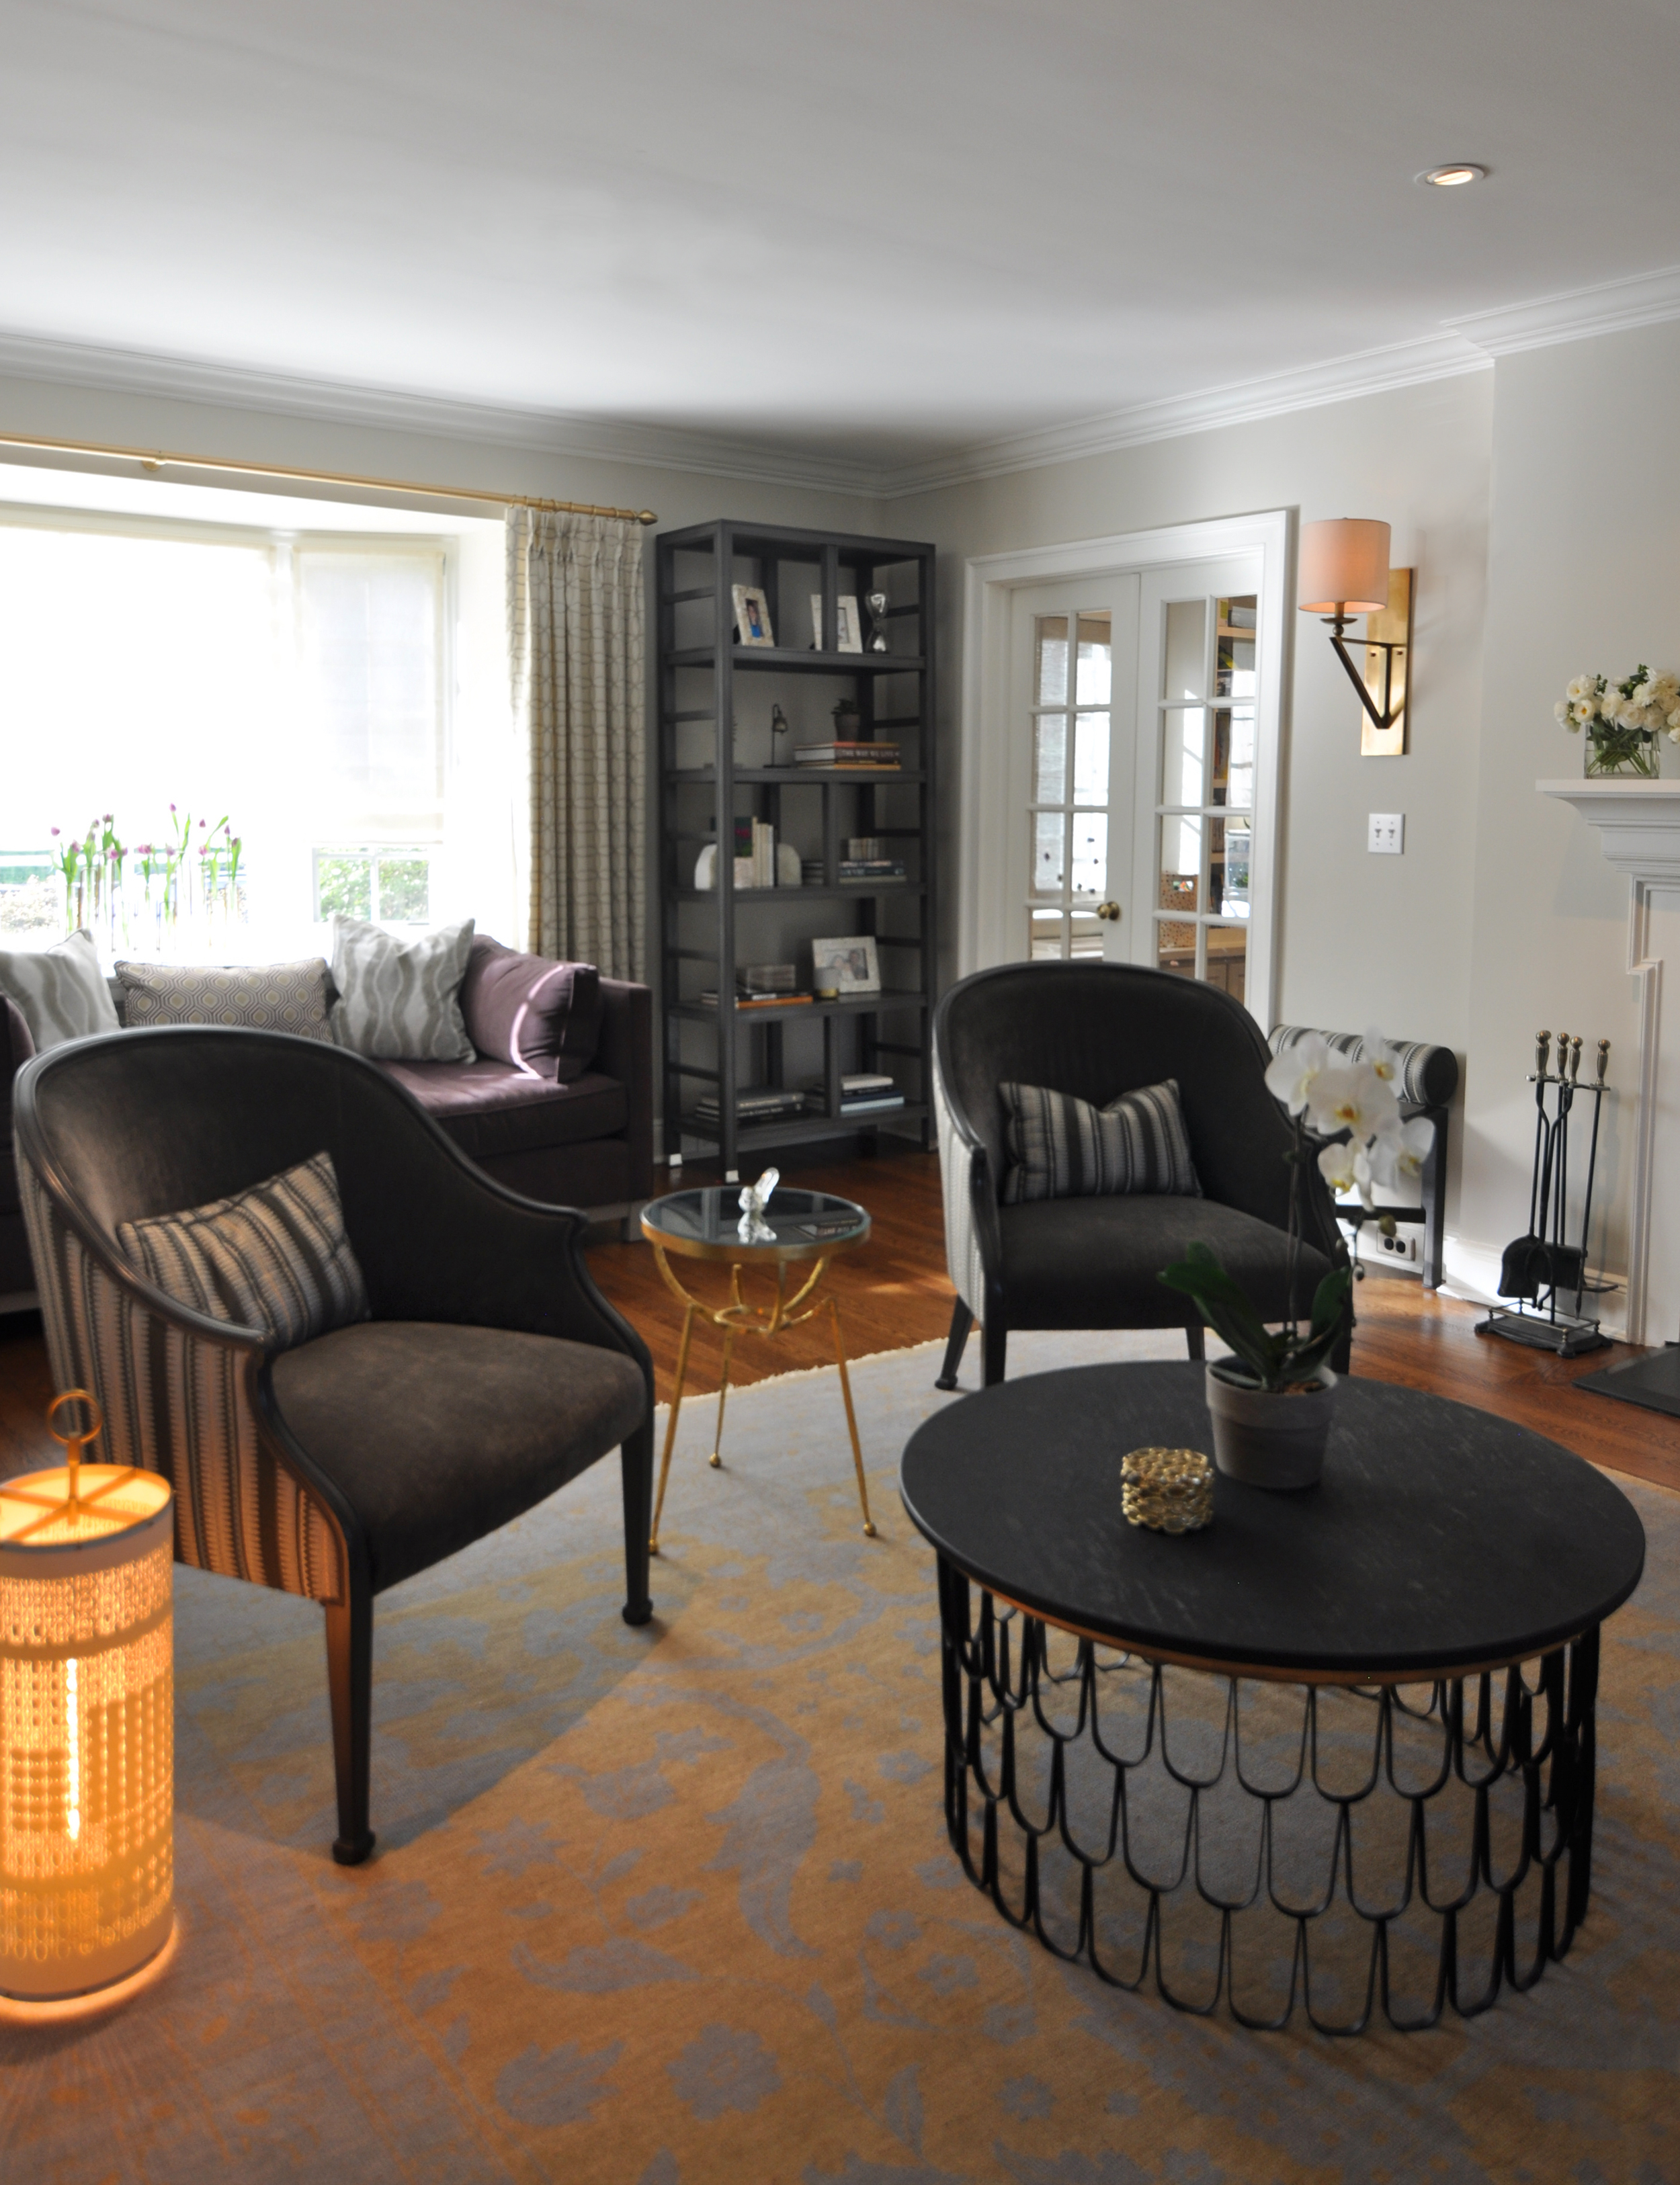 KAM DESIGN_Kim A Mitchell Interior Designer_Timeless Relaxed Elgance_Living Room_Arteriors Cocktail Table_Vanguard Etagere_MGBW Lounge_Fiyel Levent Lantern_Pollock Fabric on Reupholsterd Chairs_Larchmont NY_2016 for.jpg